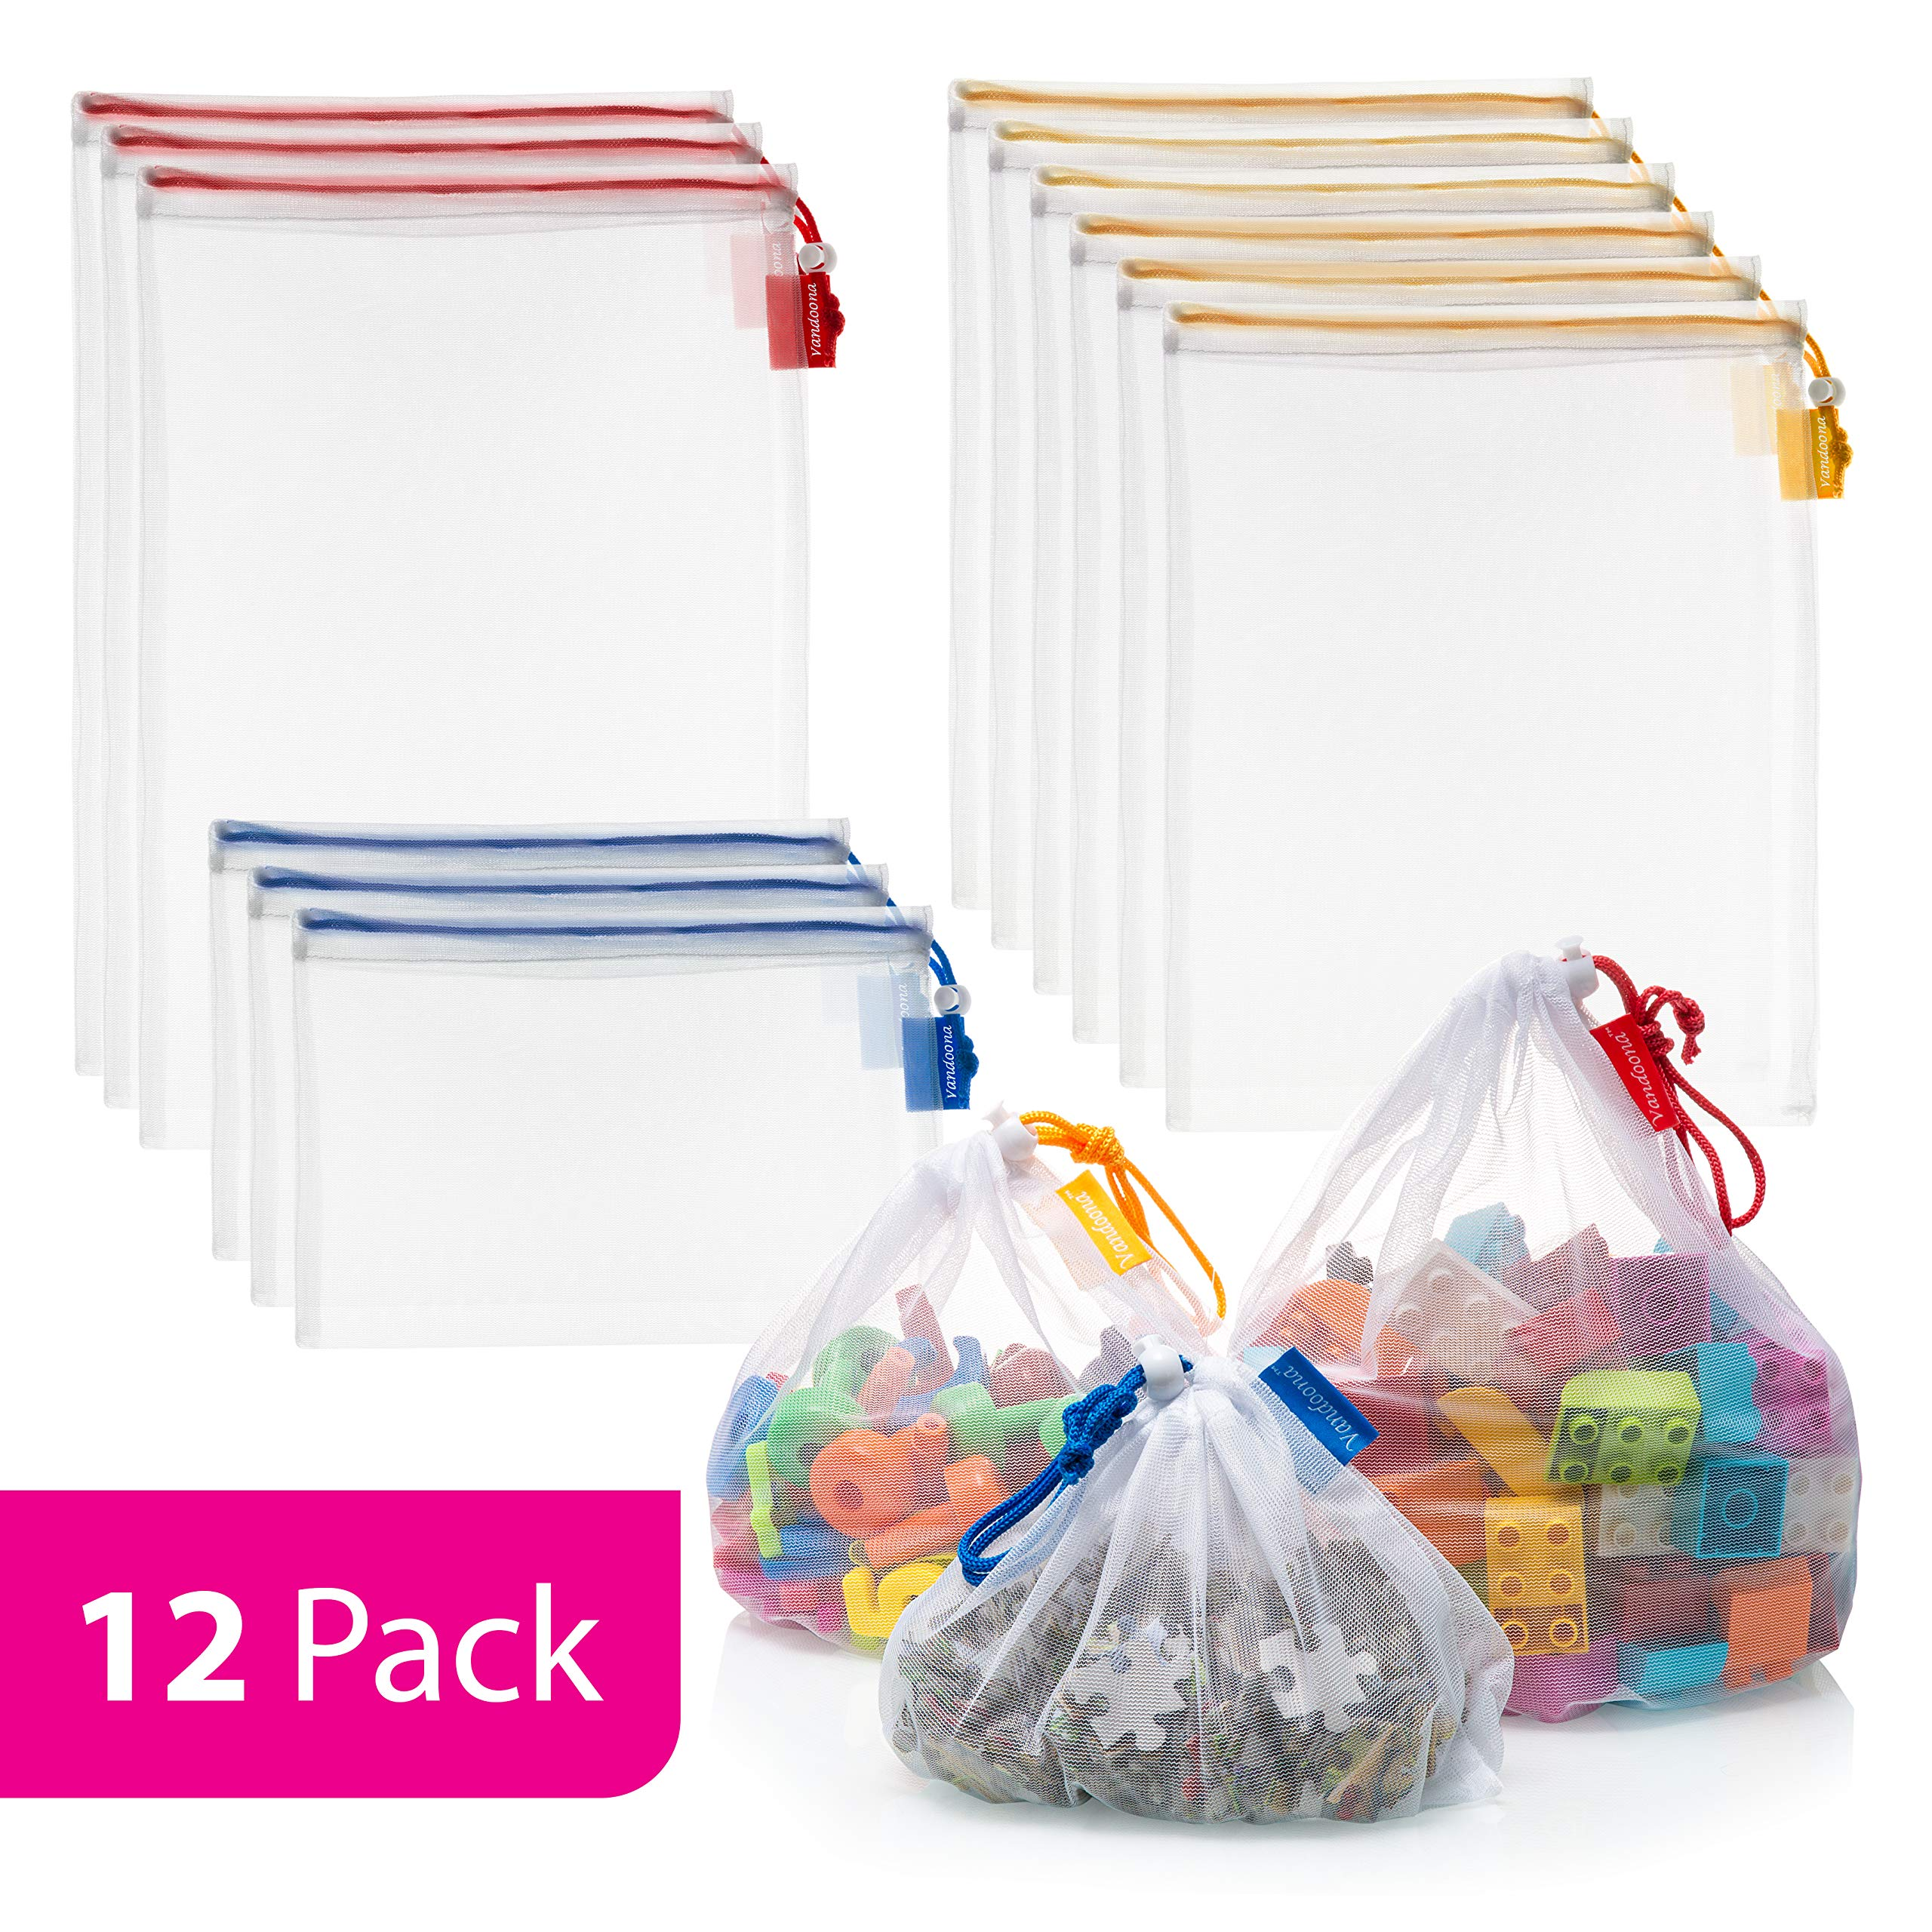 Vandoona Toy Storage & Organization Mesh Bags Set of 12 Eco Friendly Washable Mesh Bags & Color Coded Drawstrings by Size S, M, L. Playroom Organization, Baby Toys, Game Pieces, Toy Sets, Bathtub Toys by VANDOONA